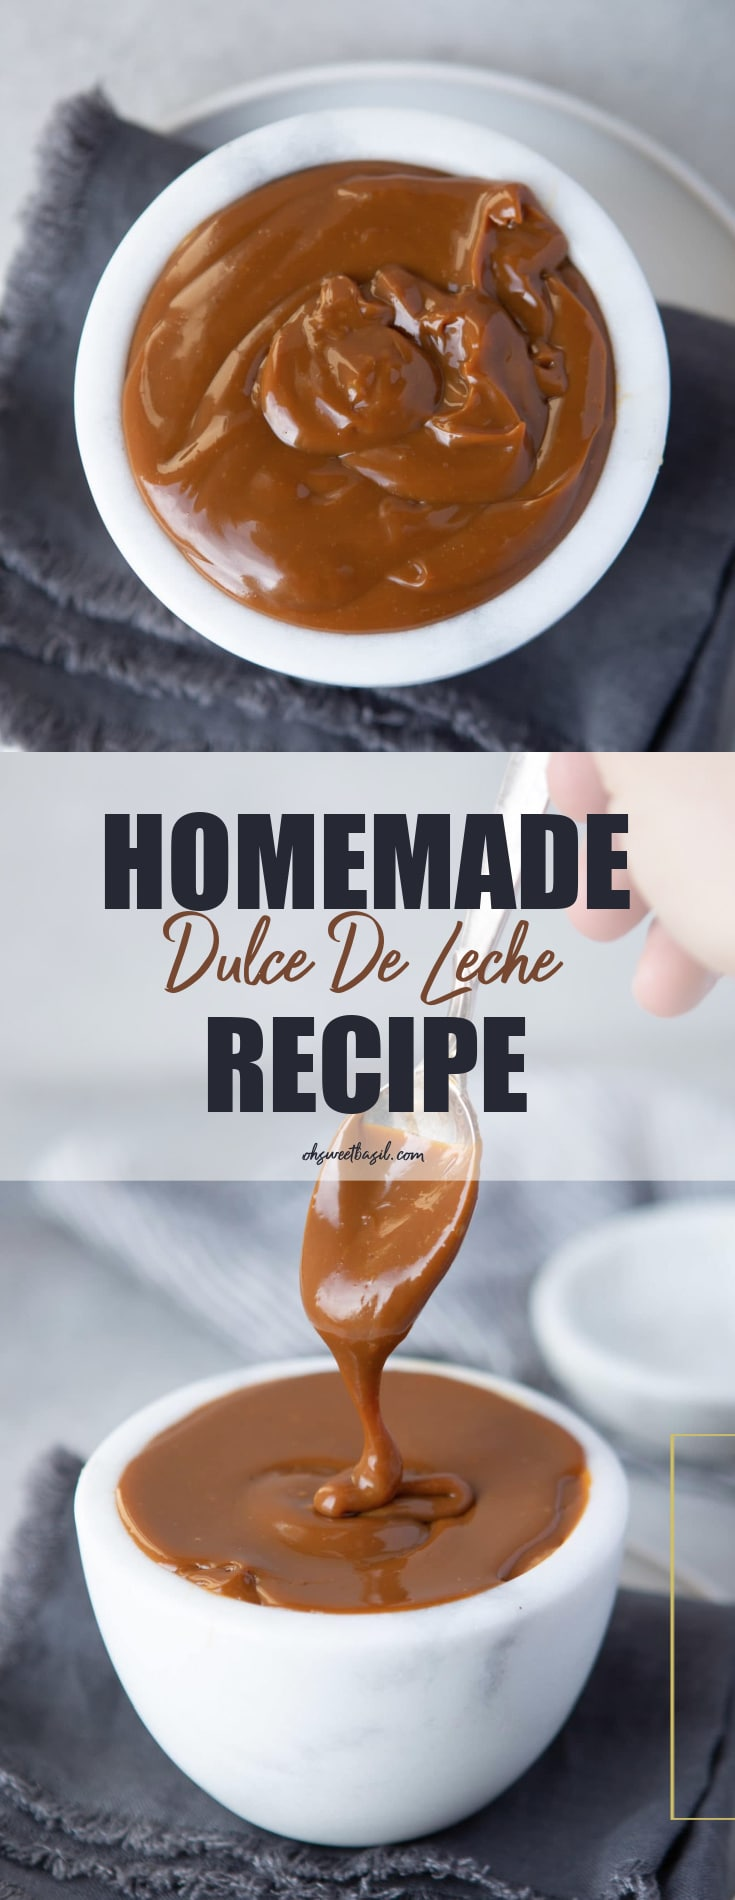 a photo of a white cup full of dulce de leche with a spoon being pulled out of the cup drizzling dulce de leche